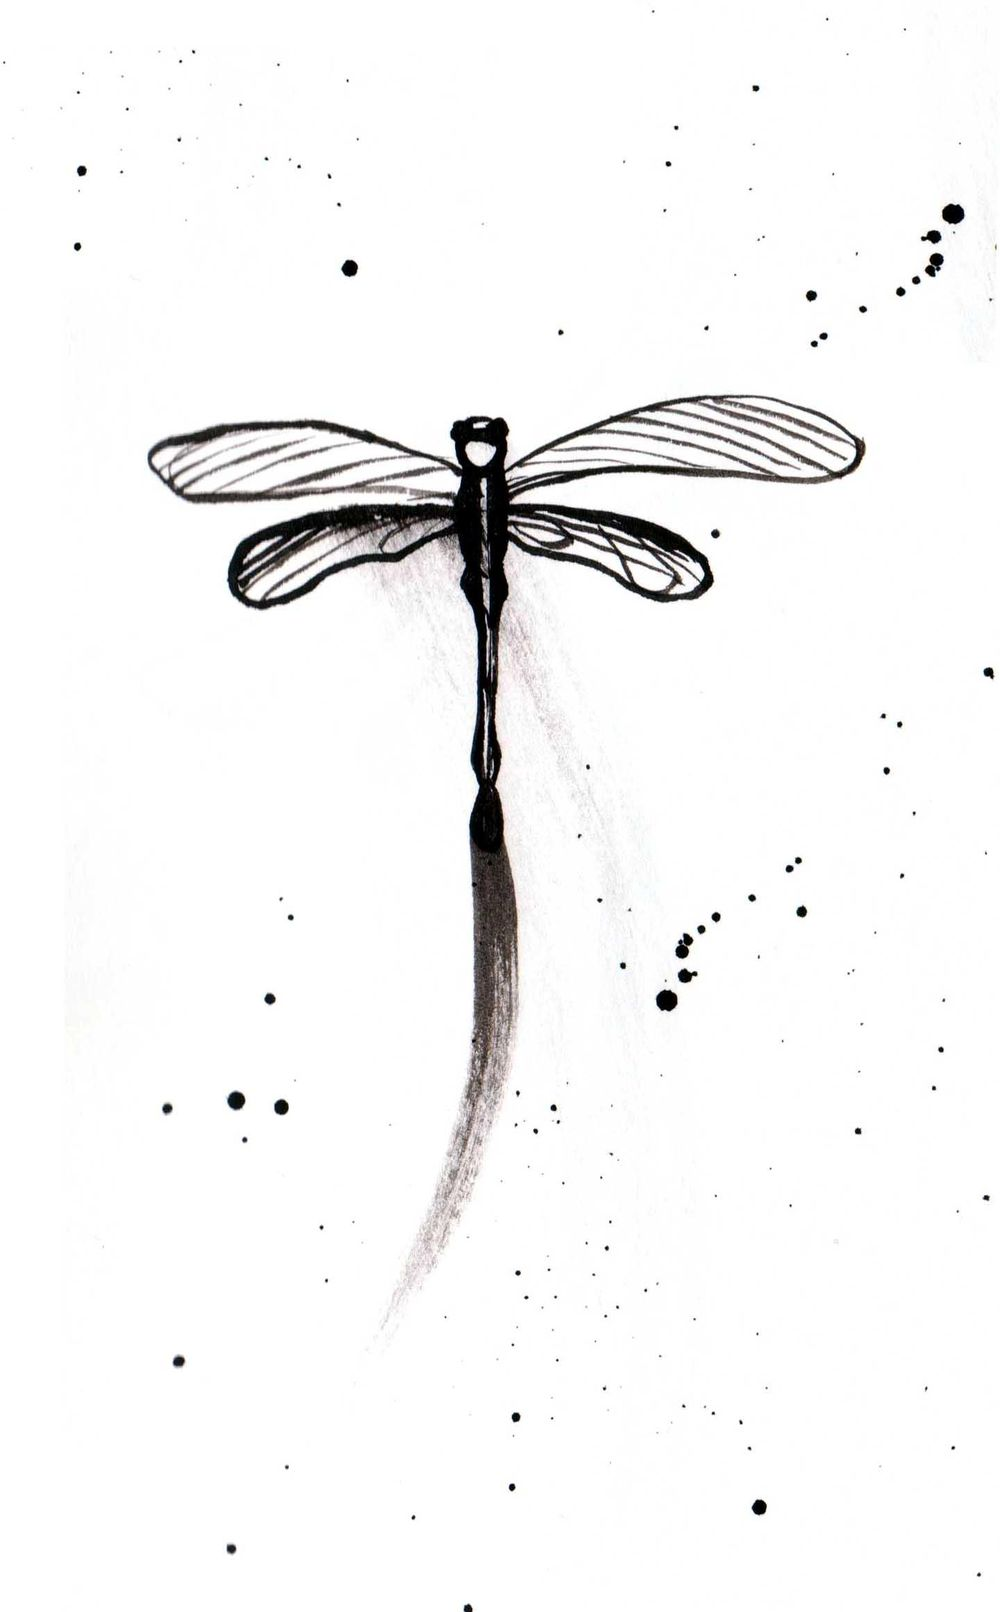 Dragonflies - image 3 - student project